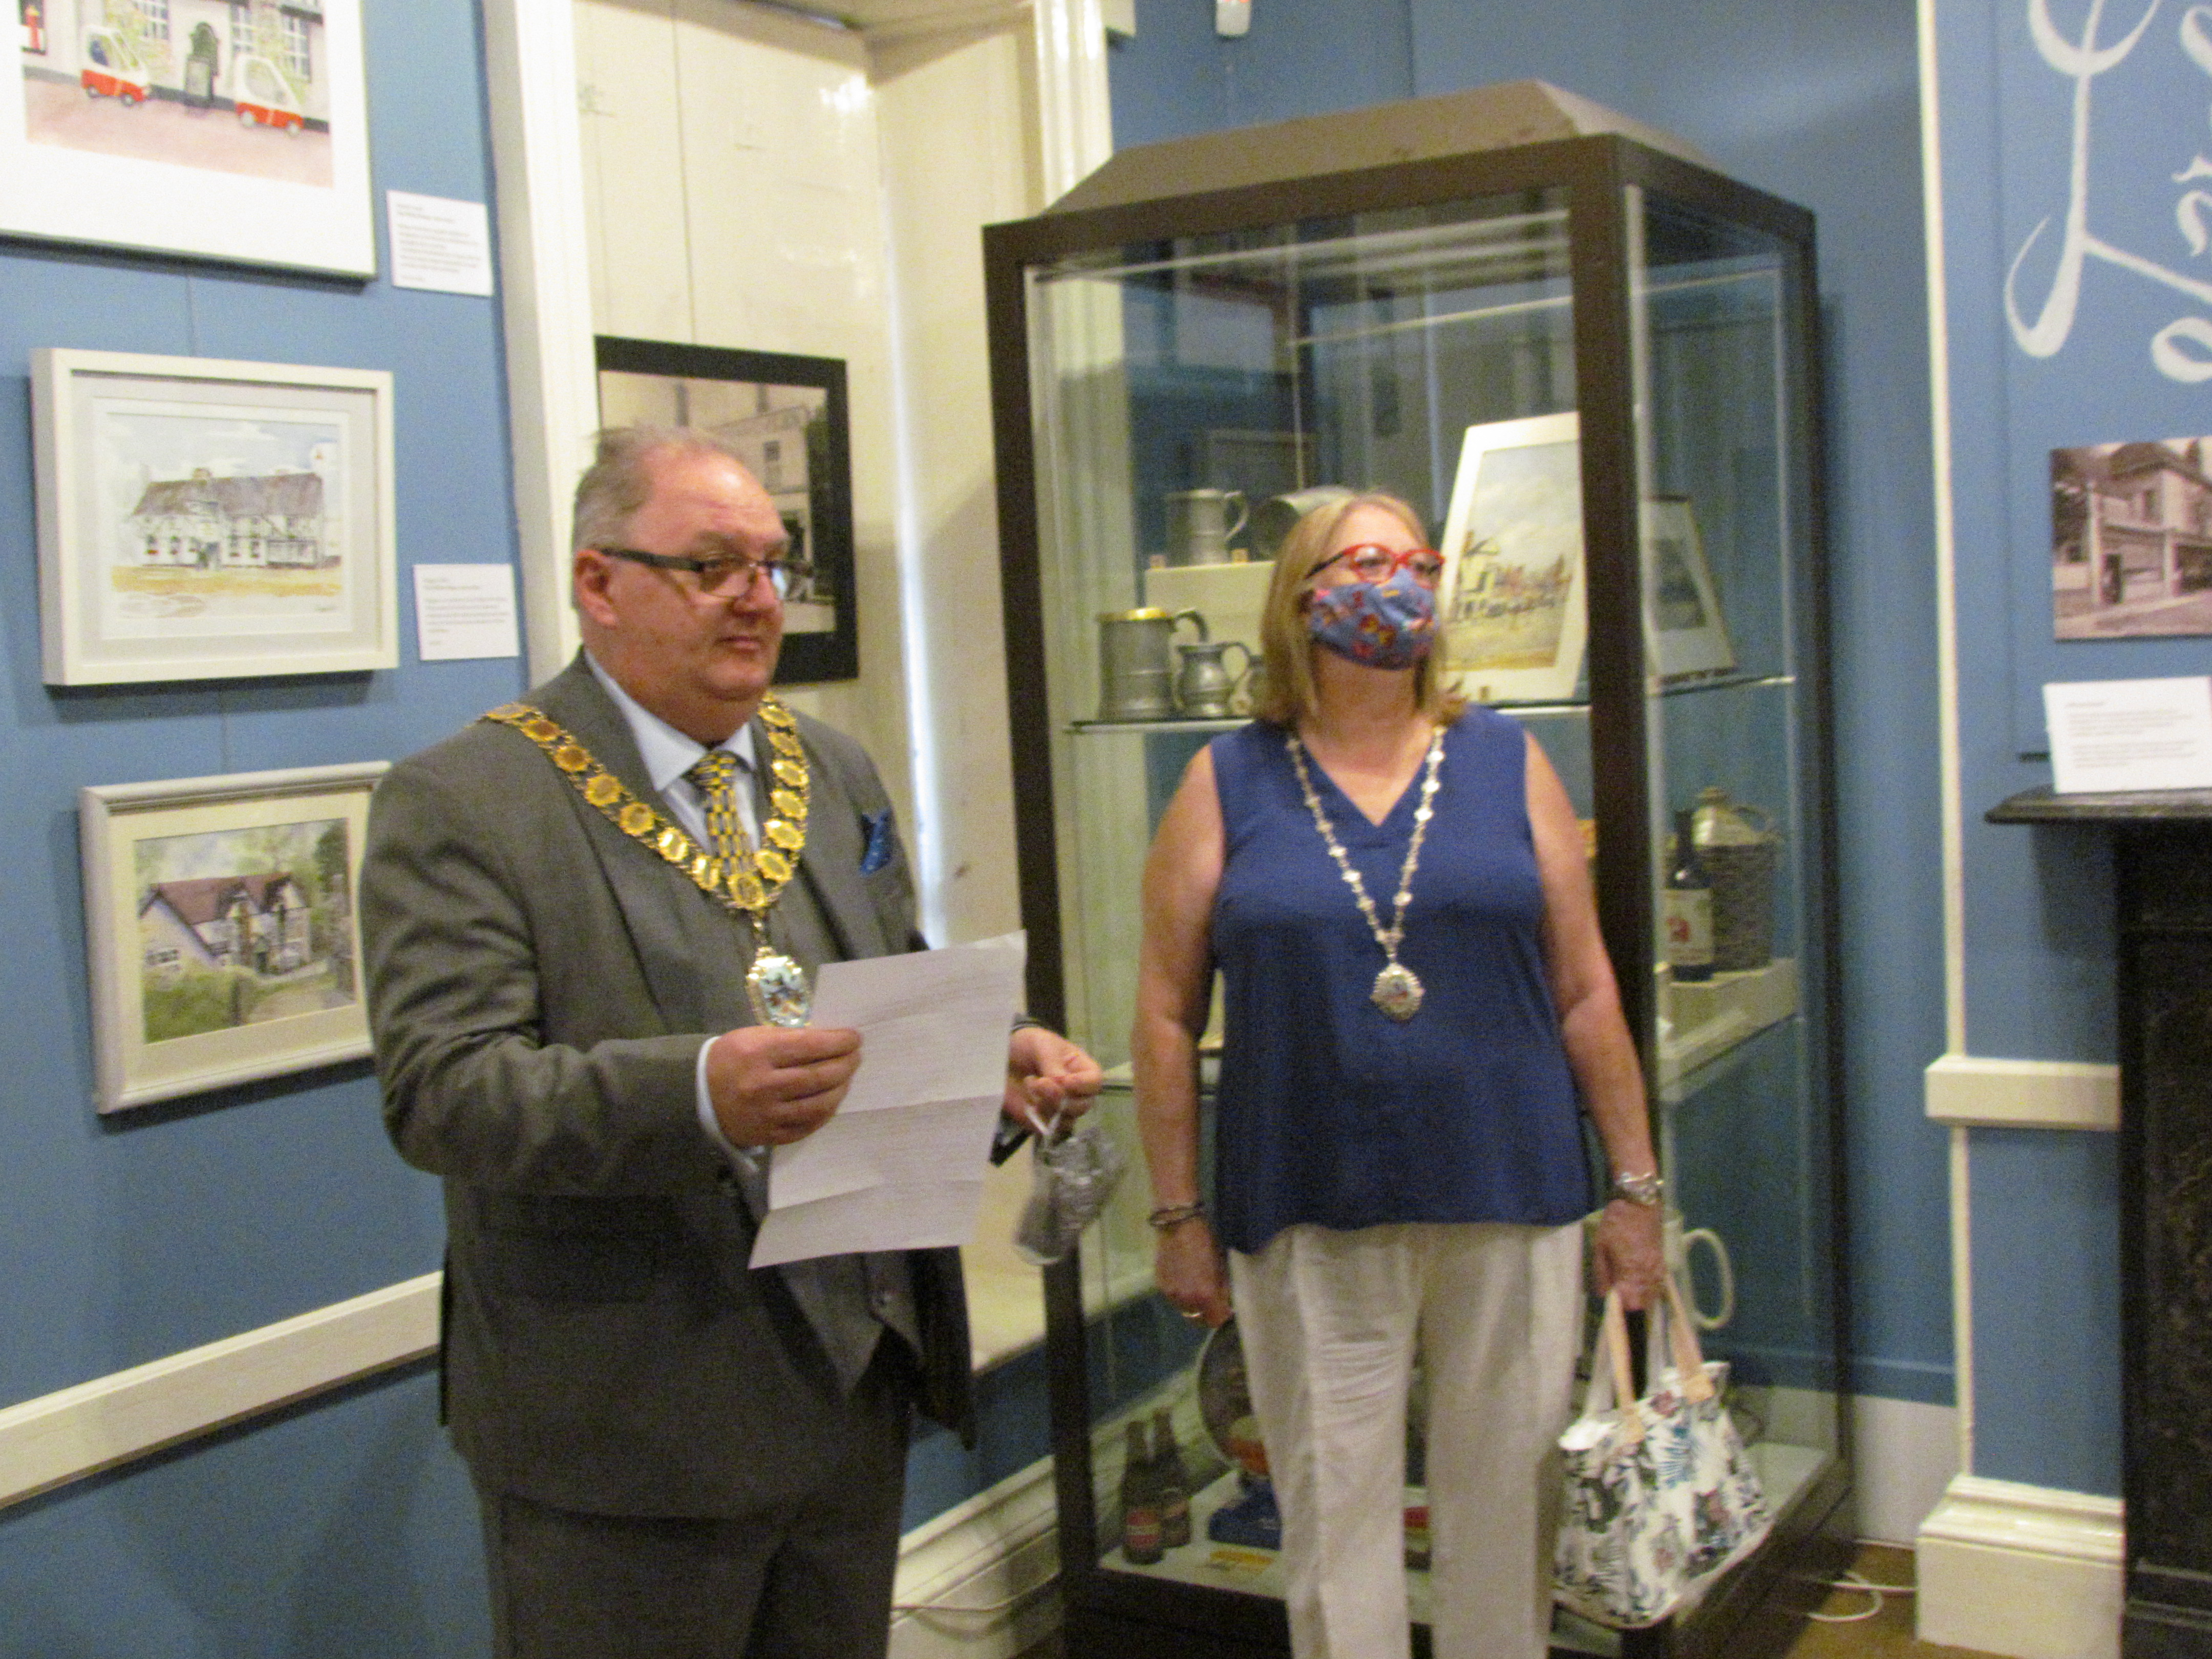 Mayor of Broxbourne - Cllr David Taylor opens the new exhibition